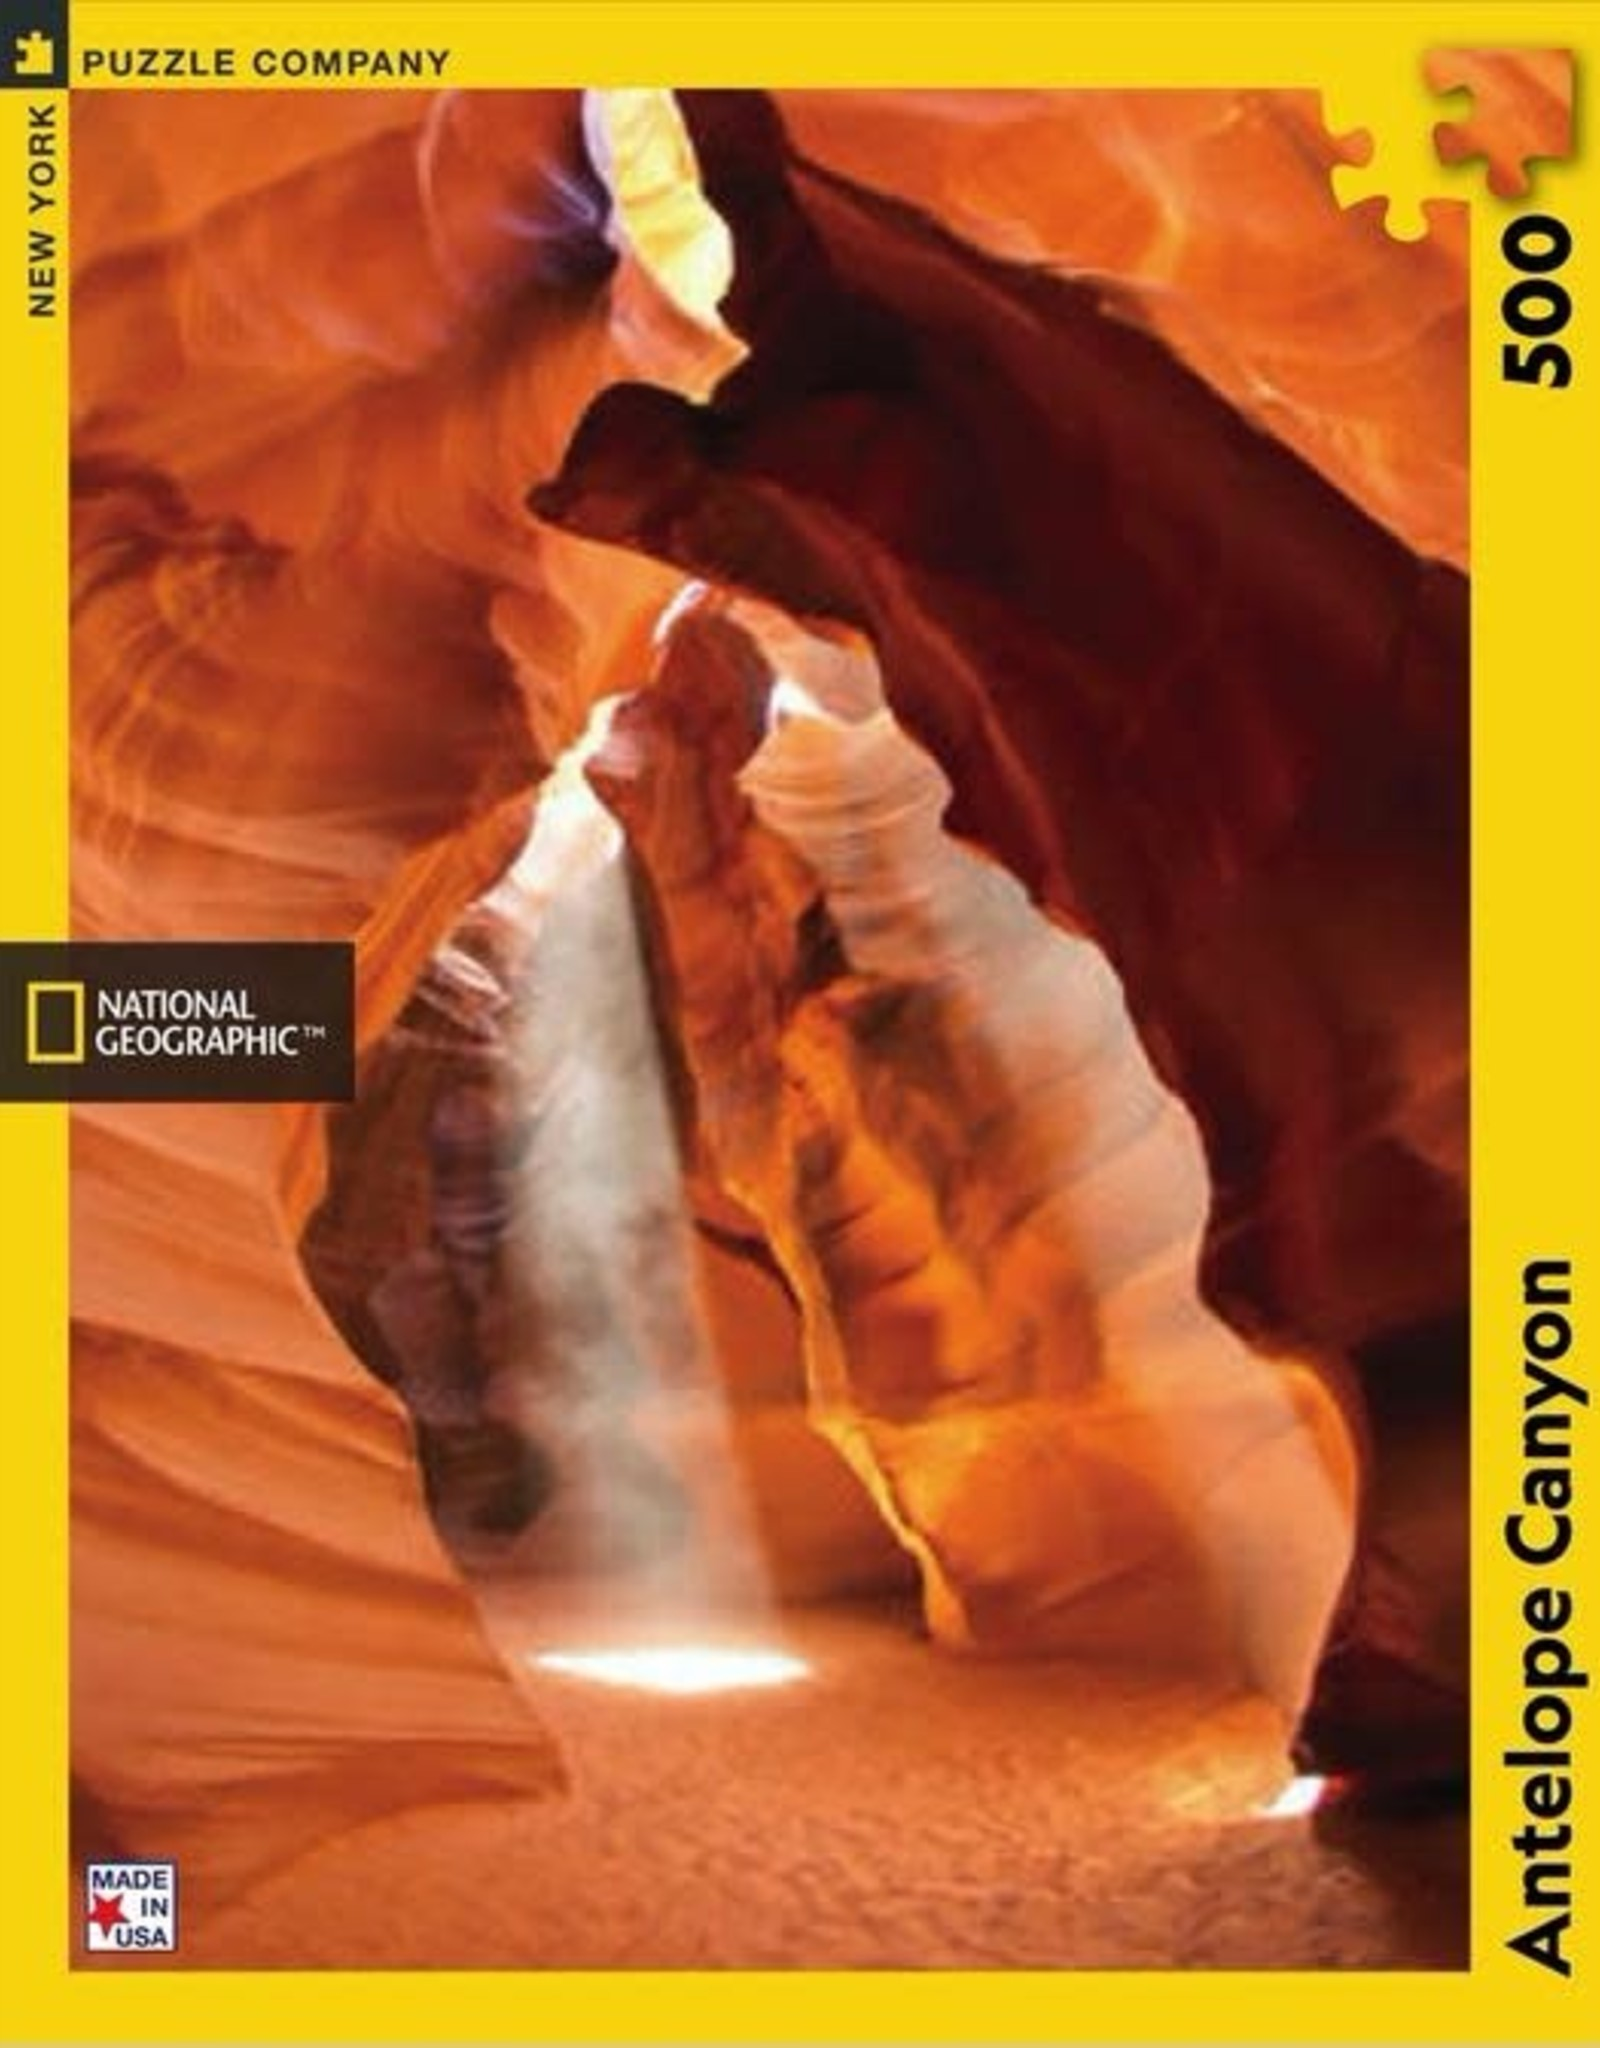 National Geographic ANTELOPE CANYON 500pc